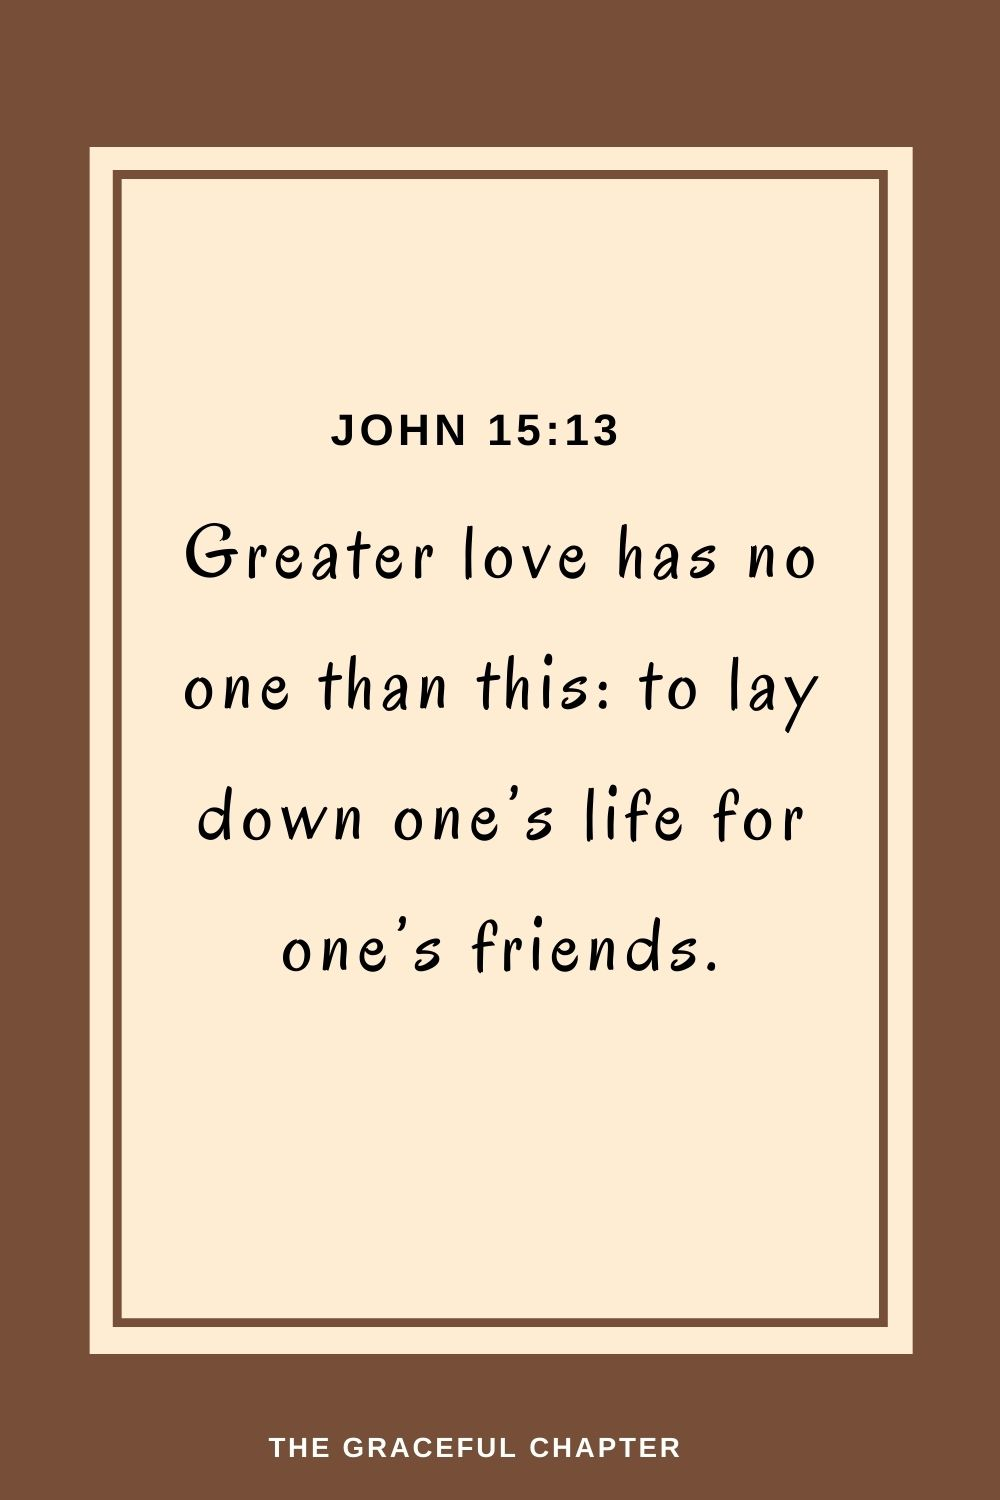 Greater love has no one than this: to lay down one's life for one's friends. John 15:13